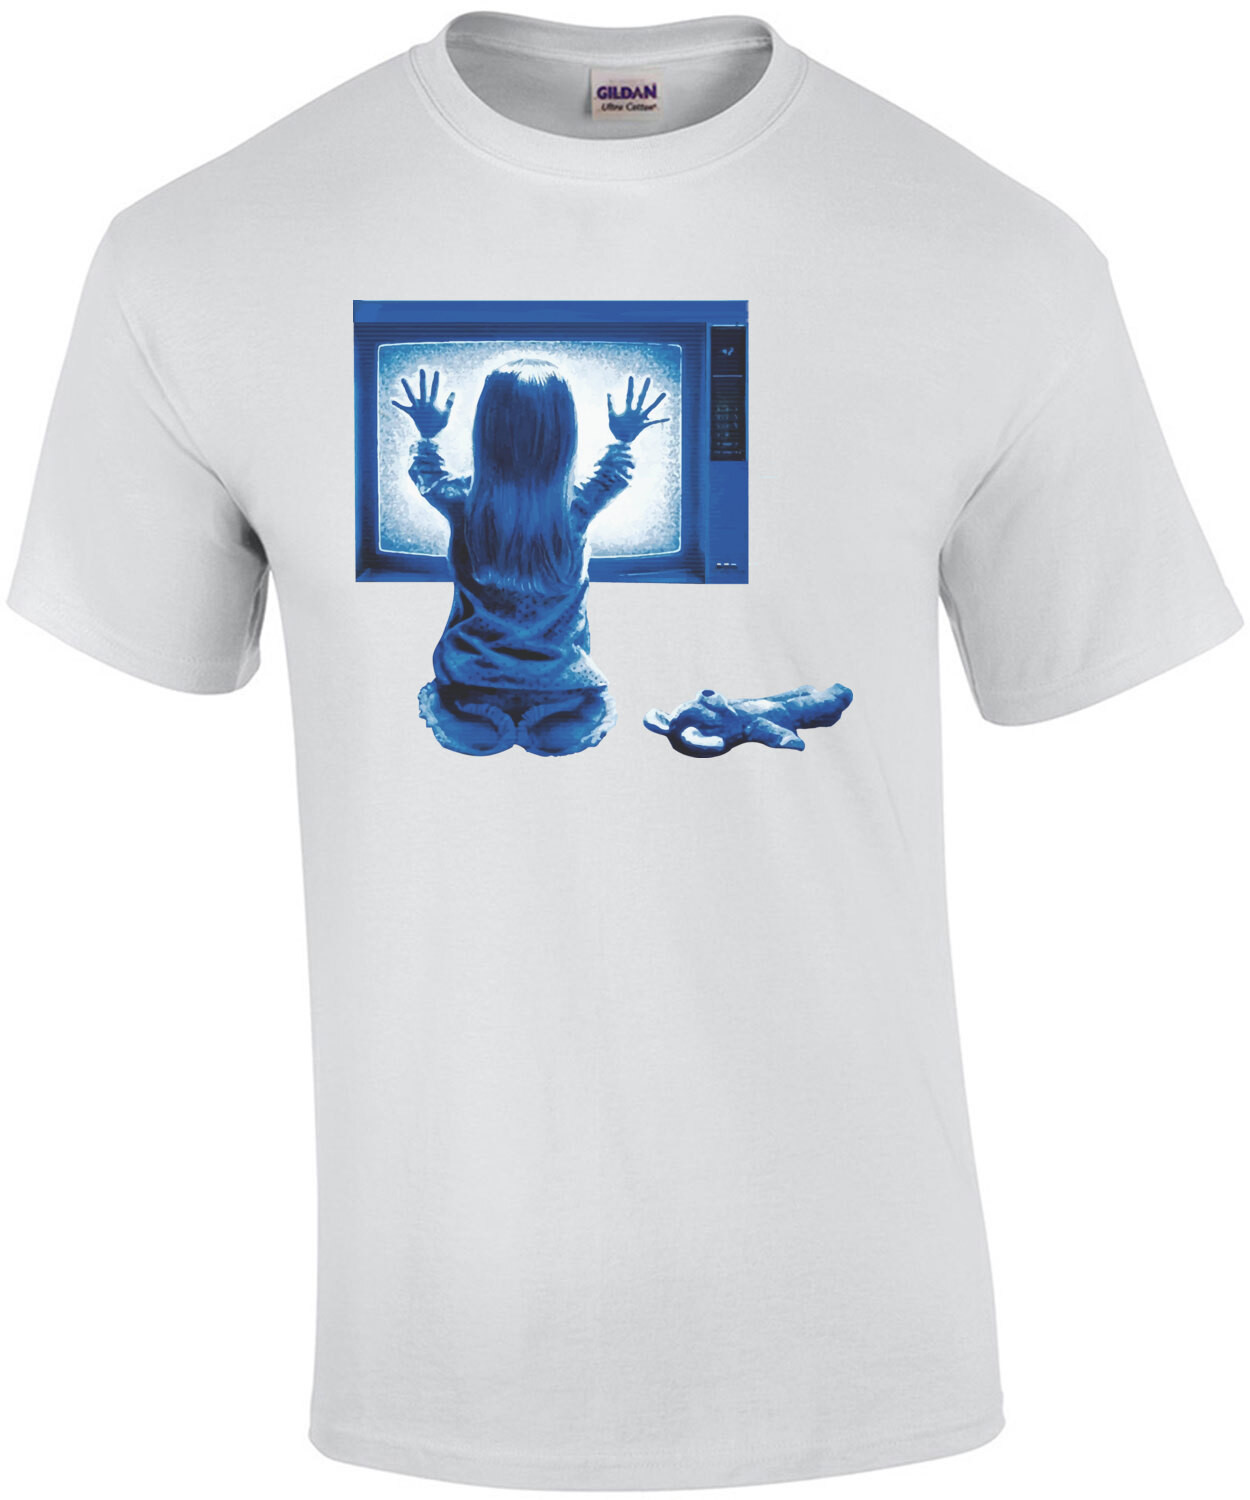 Poltergeist - They're here - 80's T-Shirt